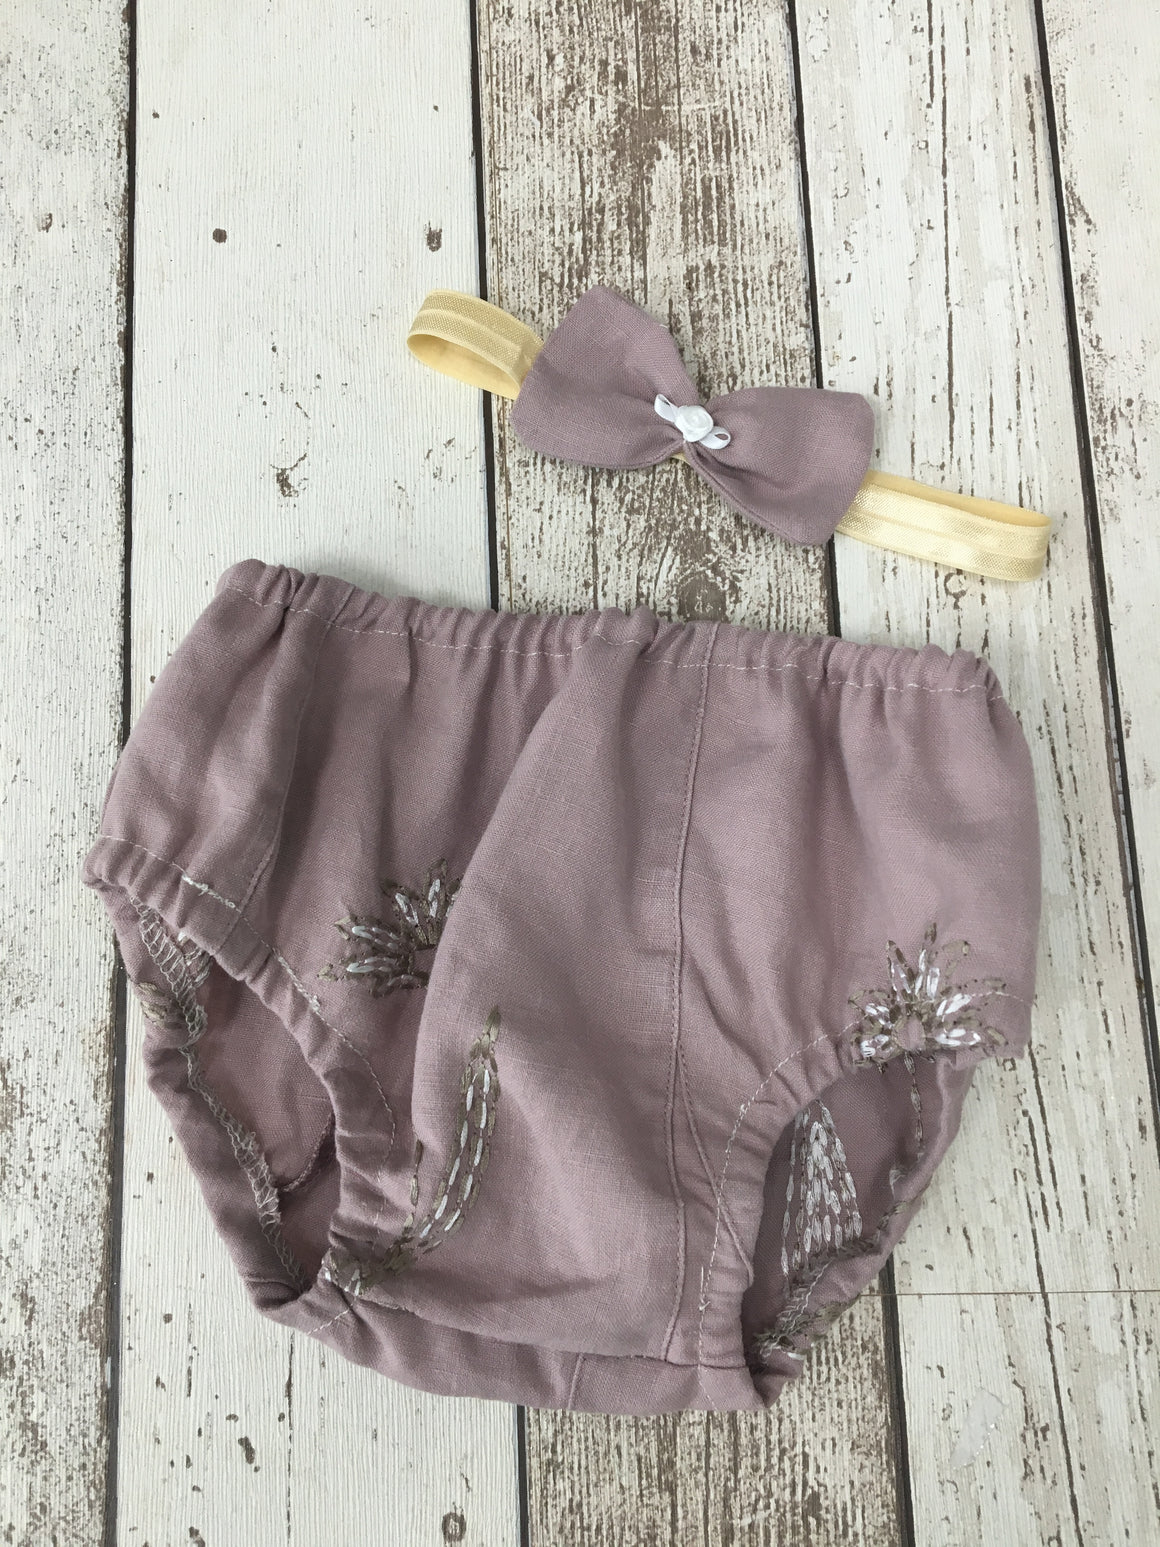 Girls Linen Cake Smash Pants with Headbands - age 12-18 months